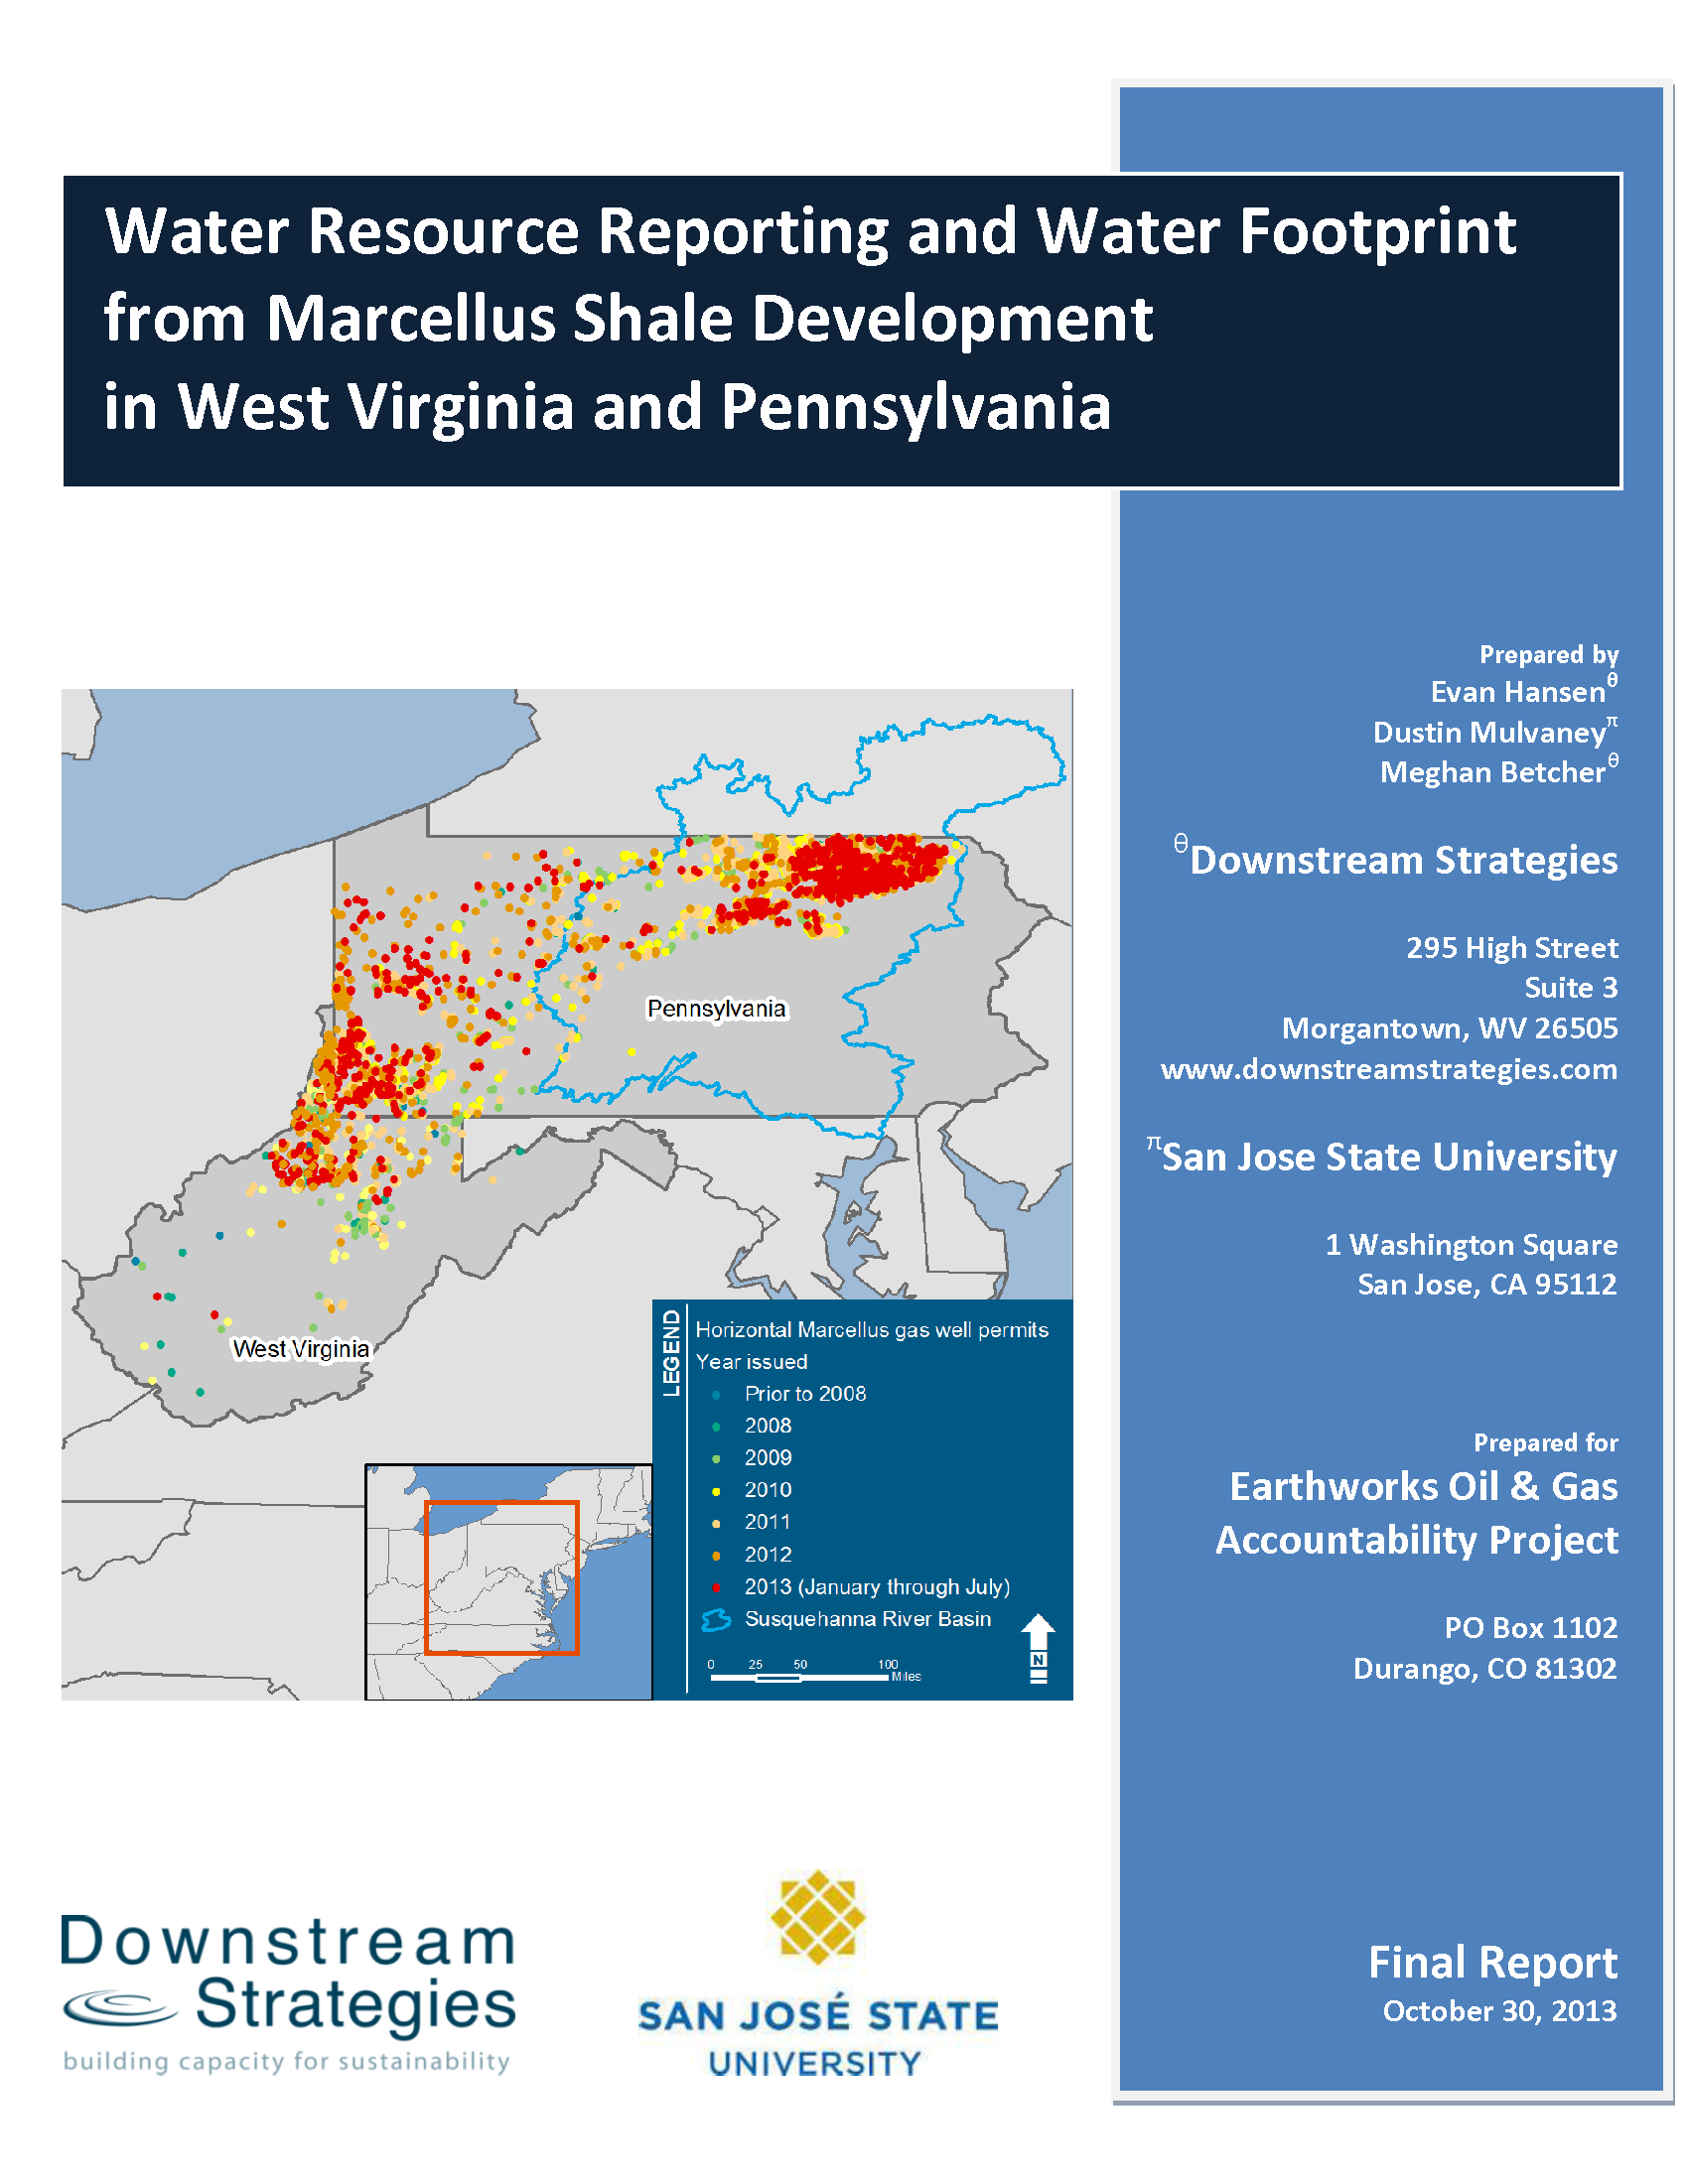 Downstream Strategies Projects Important Basic Concepts Of Residential Electrical Wiring San Jose 21mb Water Resource Reporting And Footprint From Marcellus Shale Development In West Virginia Pennsylvania 2013